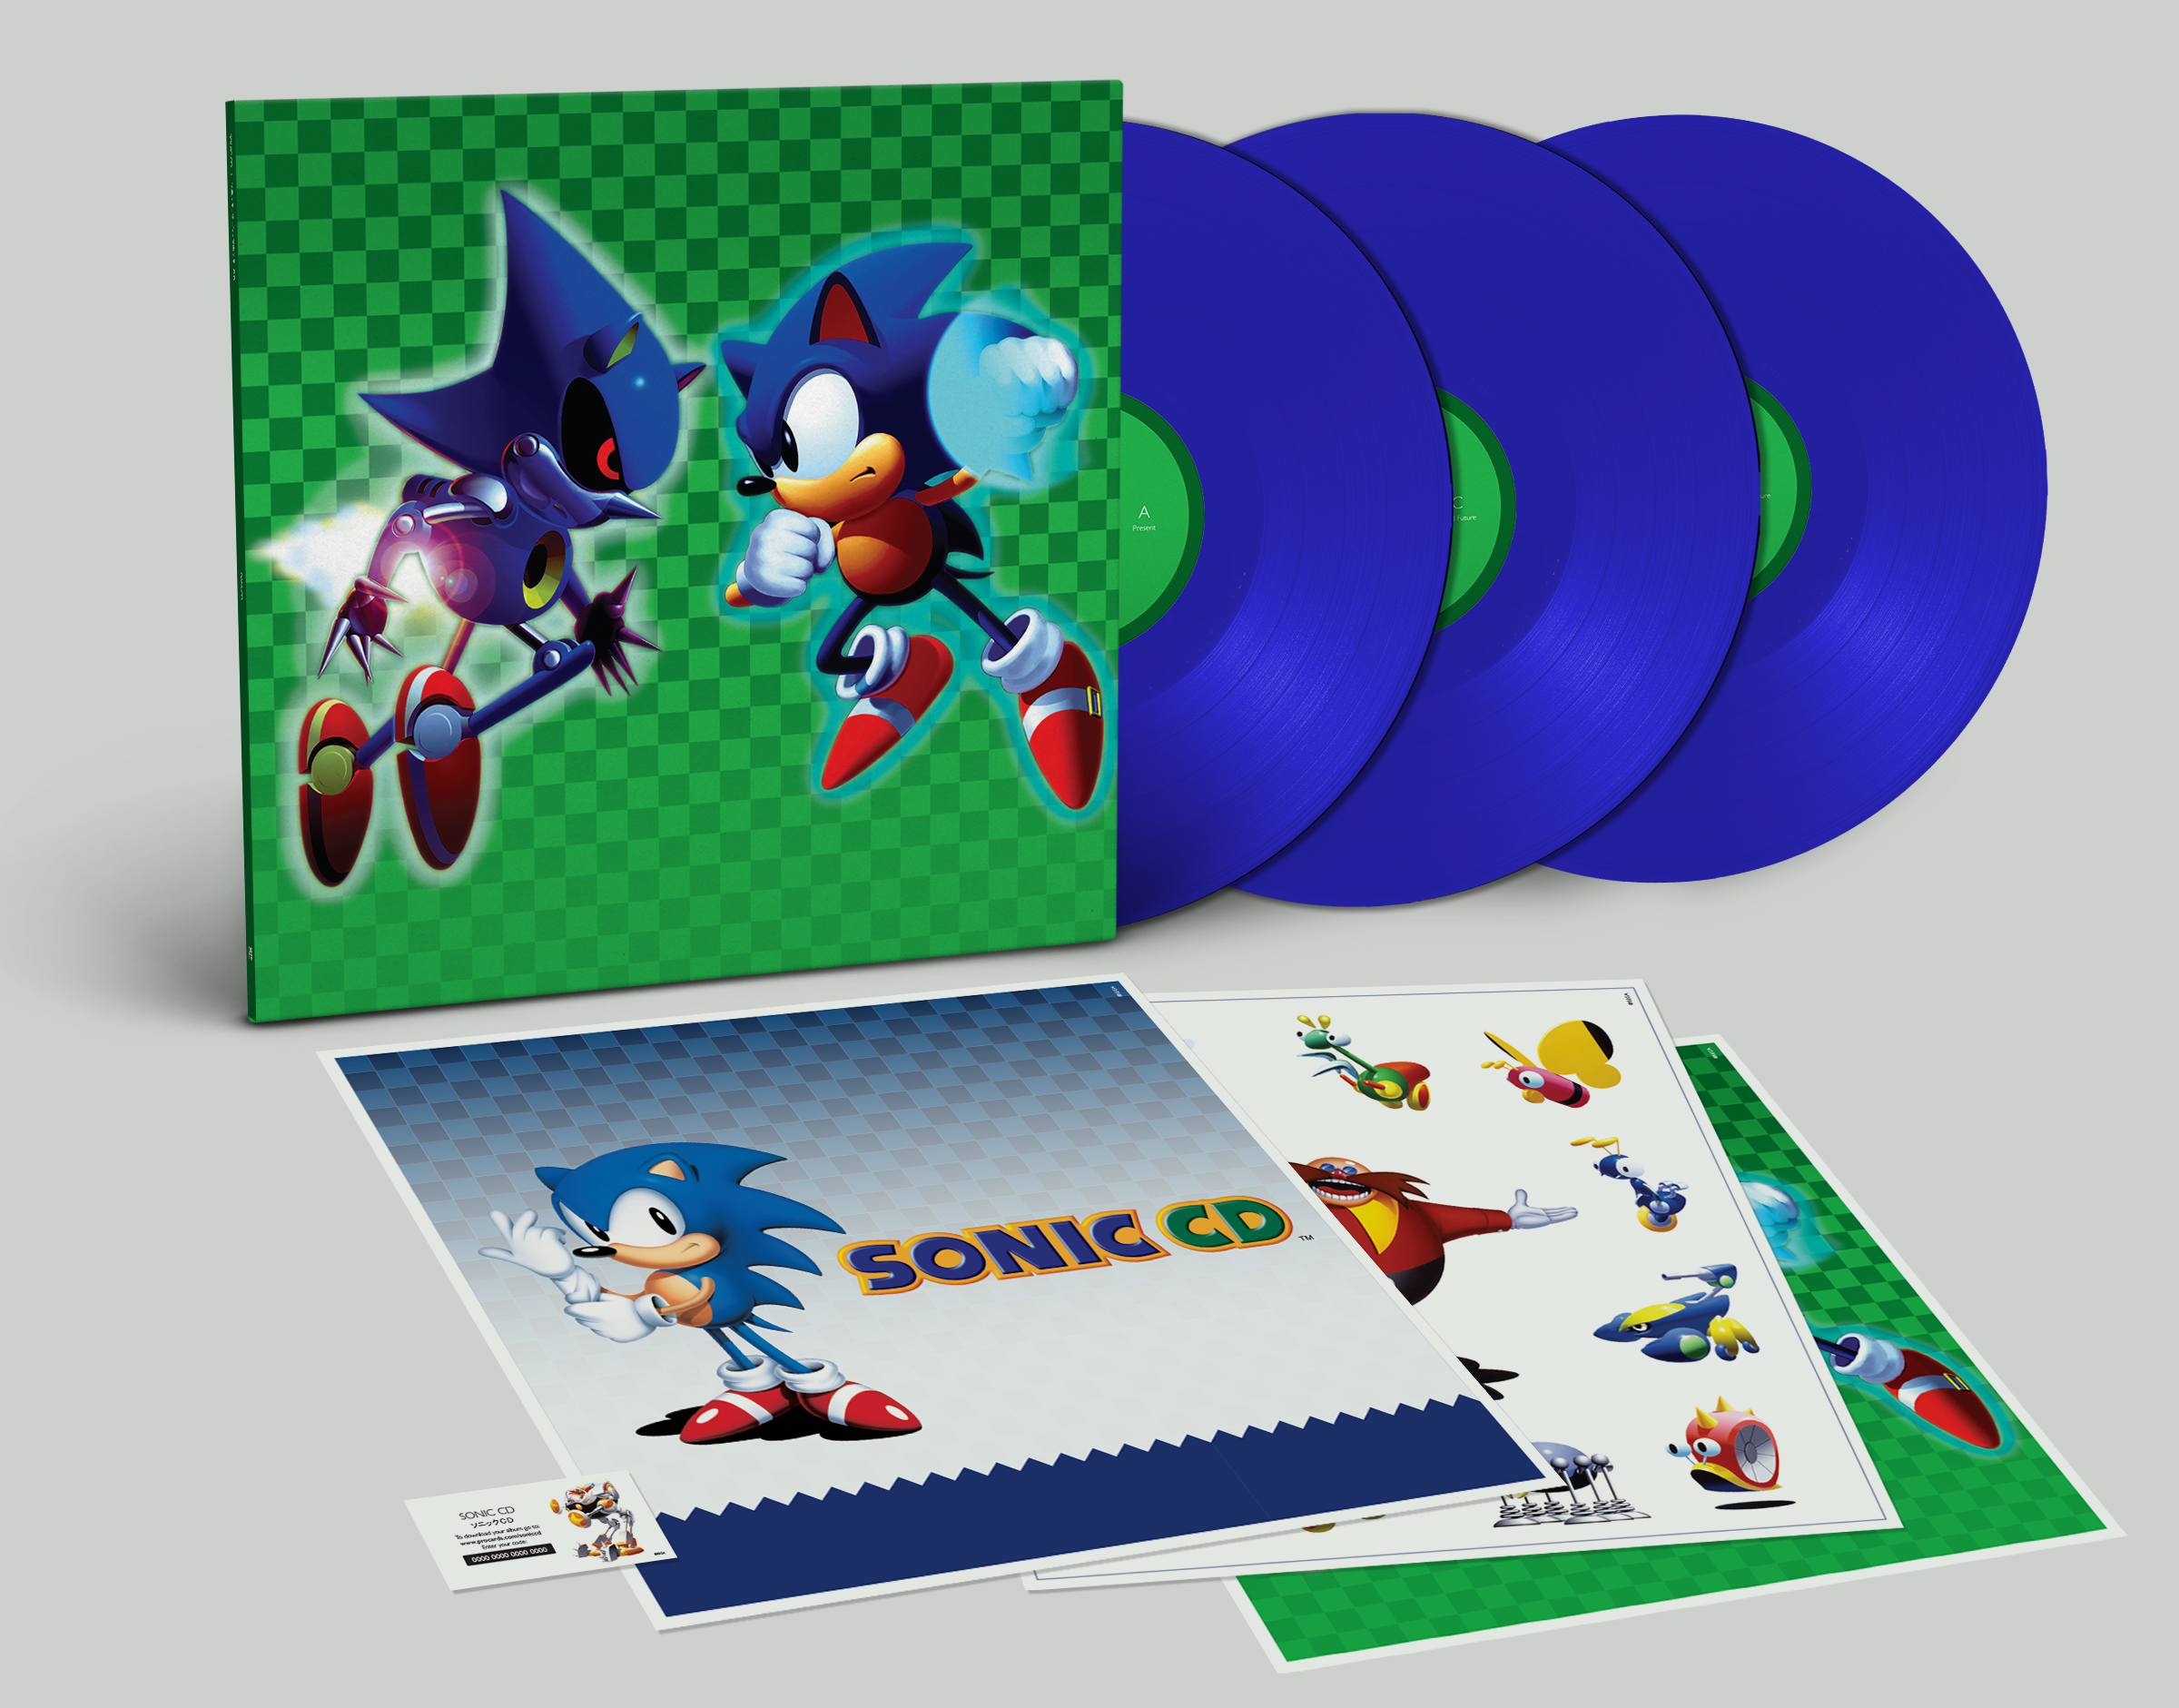 Sonic CD (aka Sonic The Hedgehog)